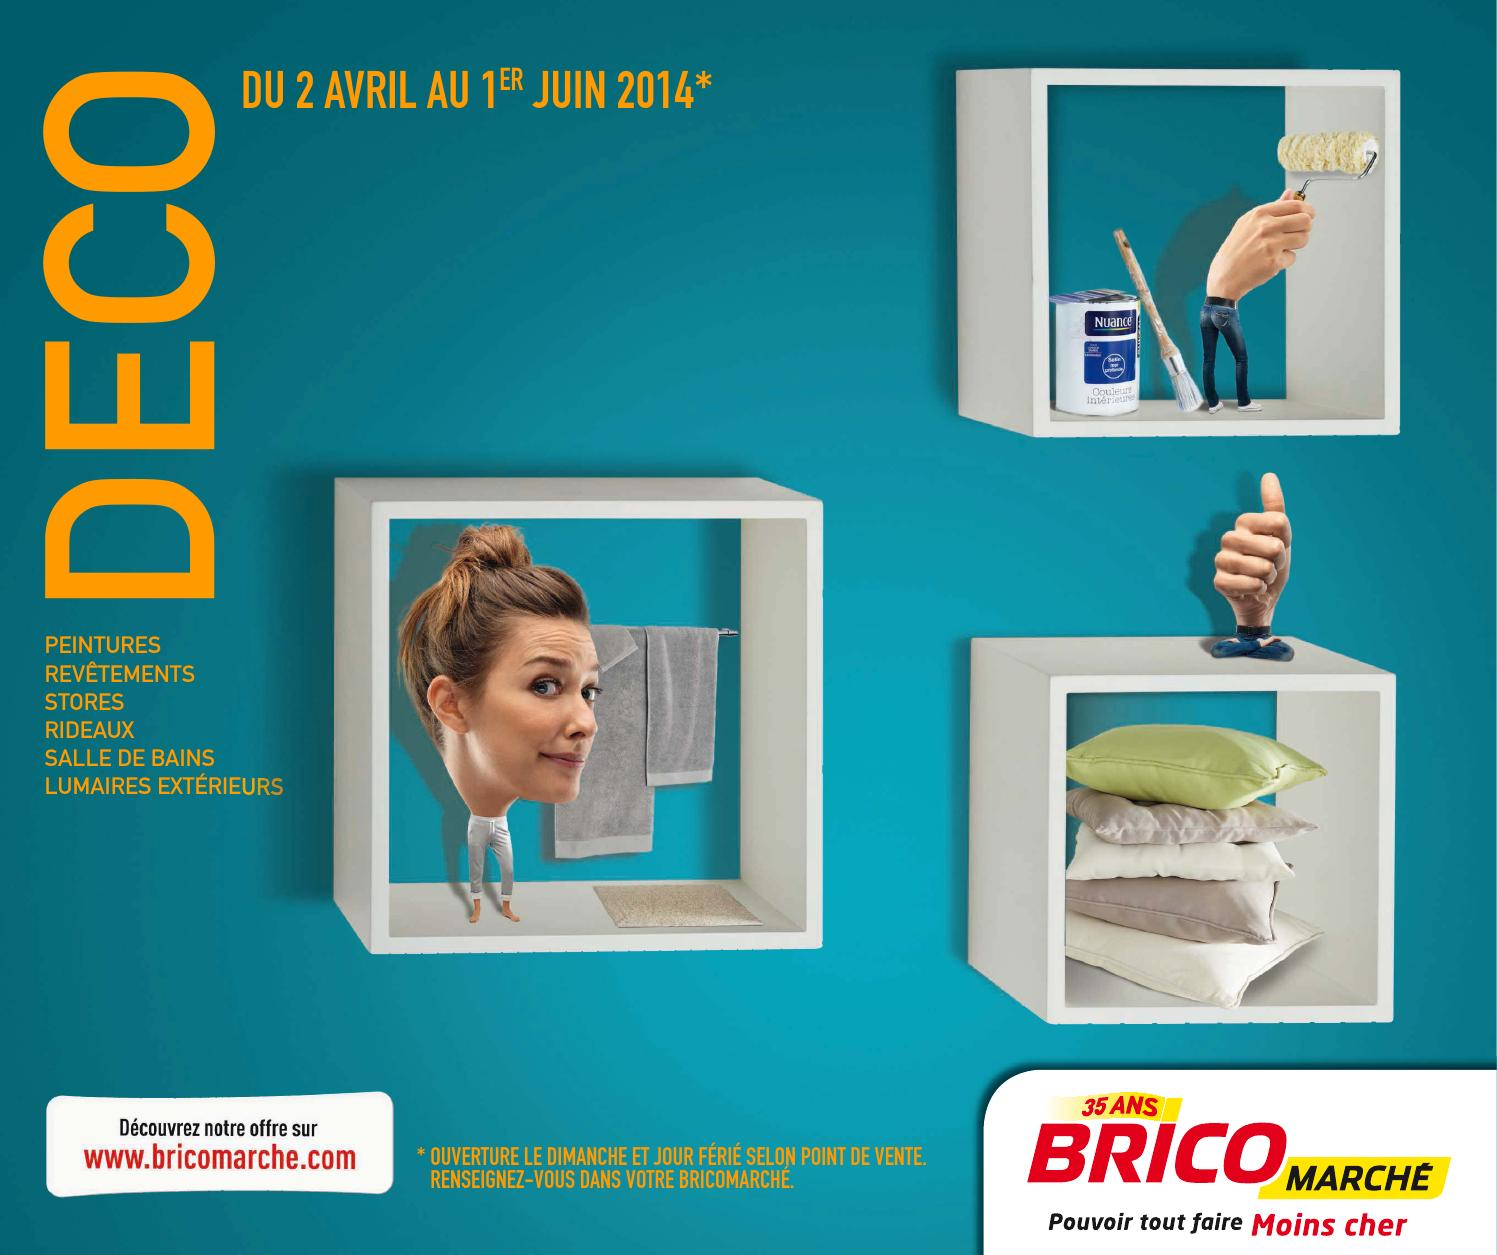 Spot Led Exterieur Bricomarche Catalogue Bricomarché 2 04 1 06 2014